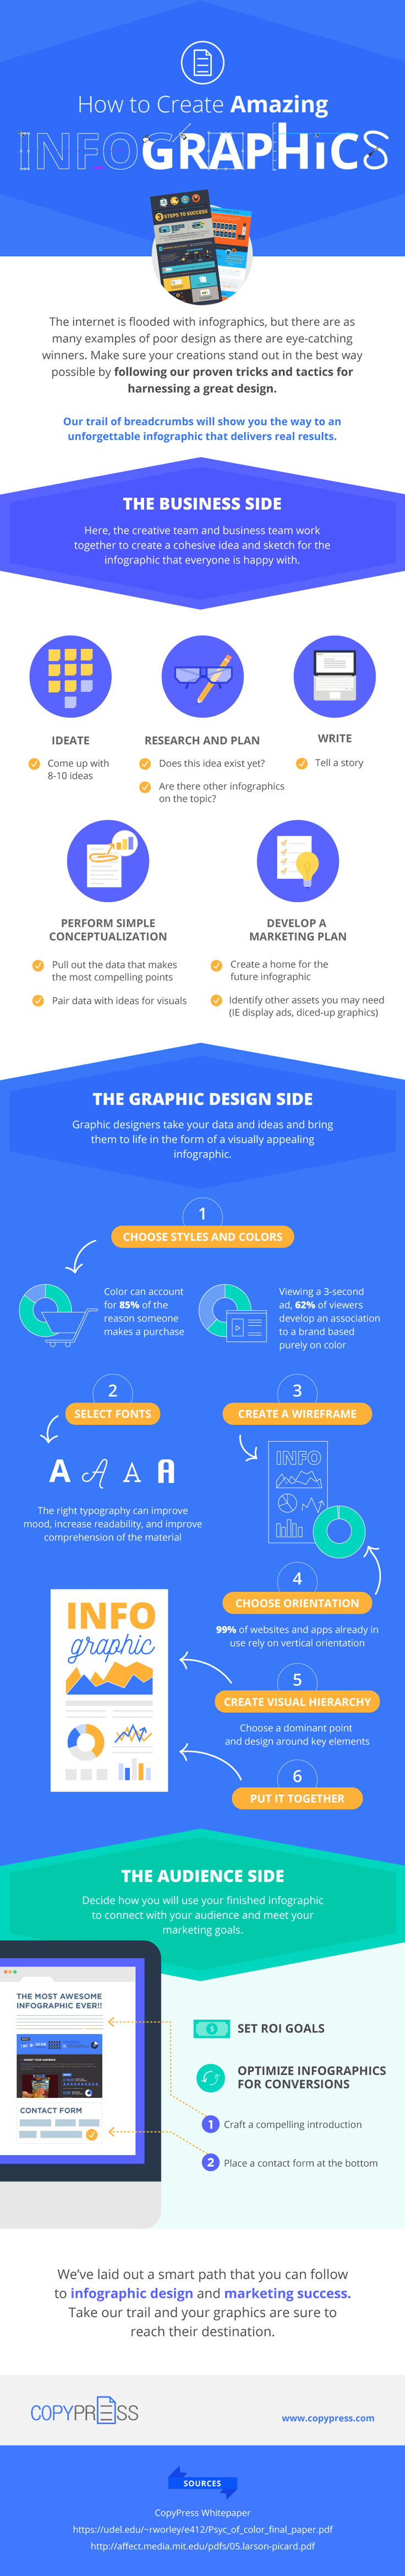 Wondering how to create an infographic? Does it seem complex and intimidating? Here are your steps to infographic success! Click through to blog for more tips.